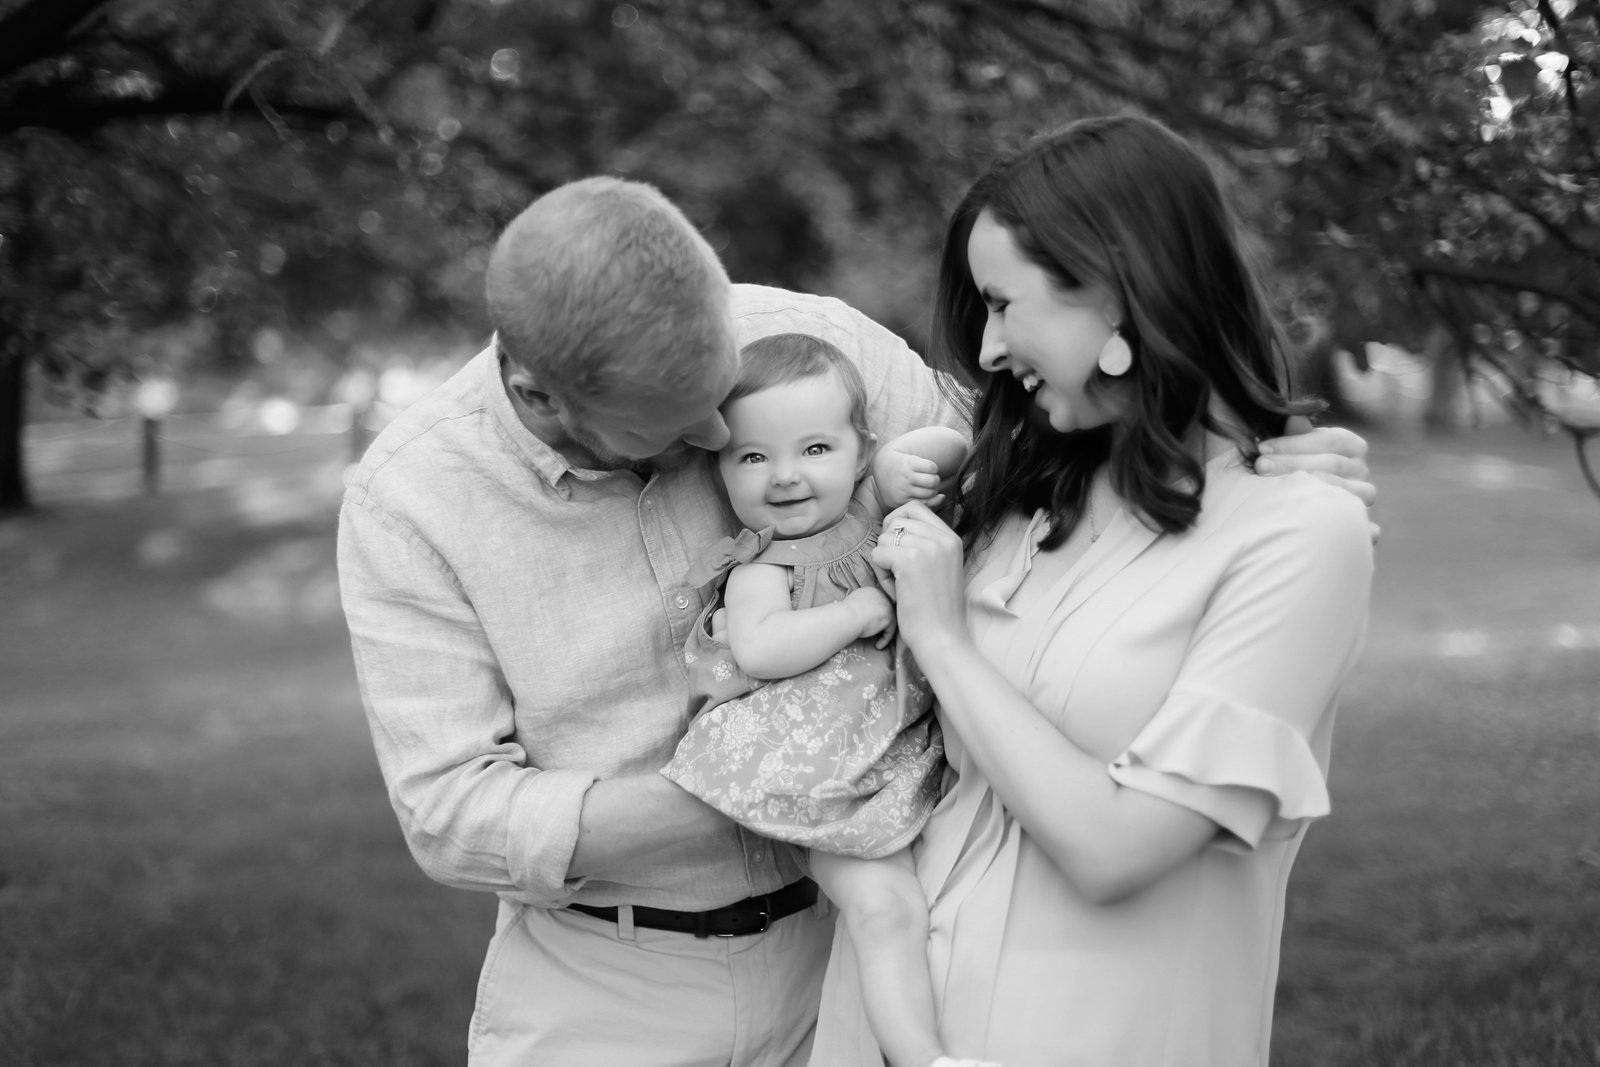 Helena Woods fairfield county connecticut fall family photographer norwalk darien children's baby photographer